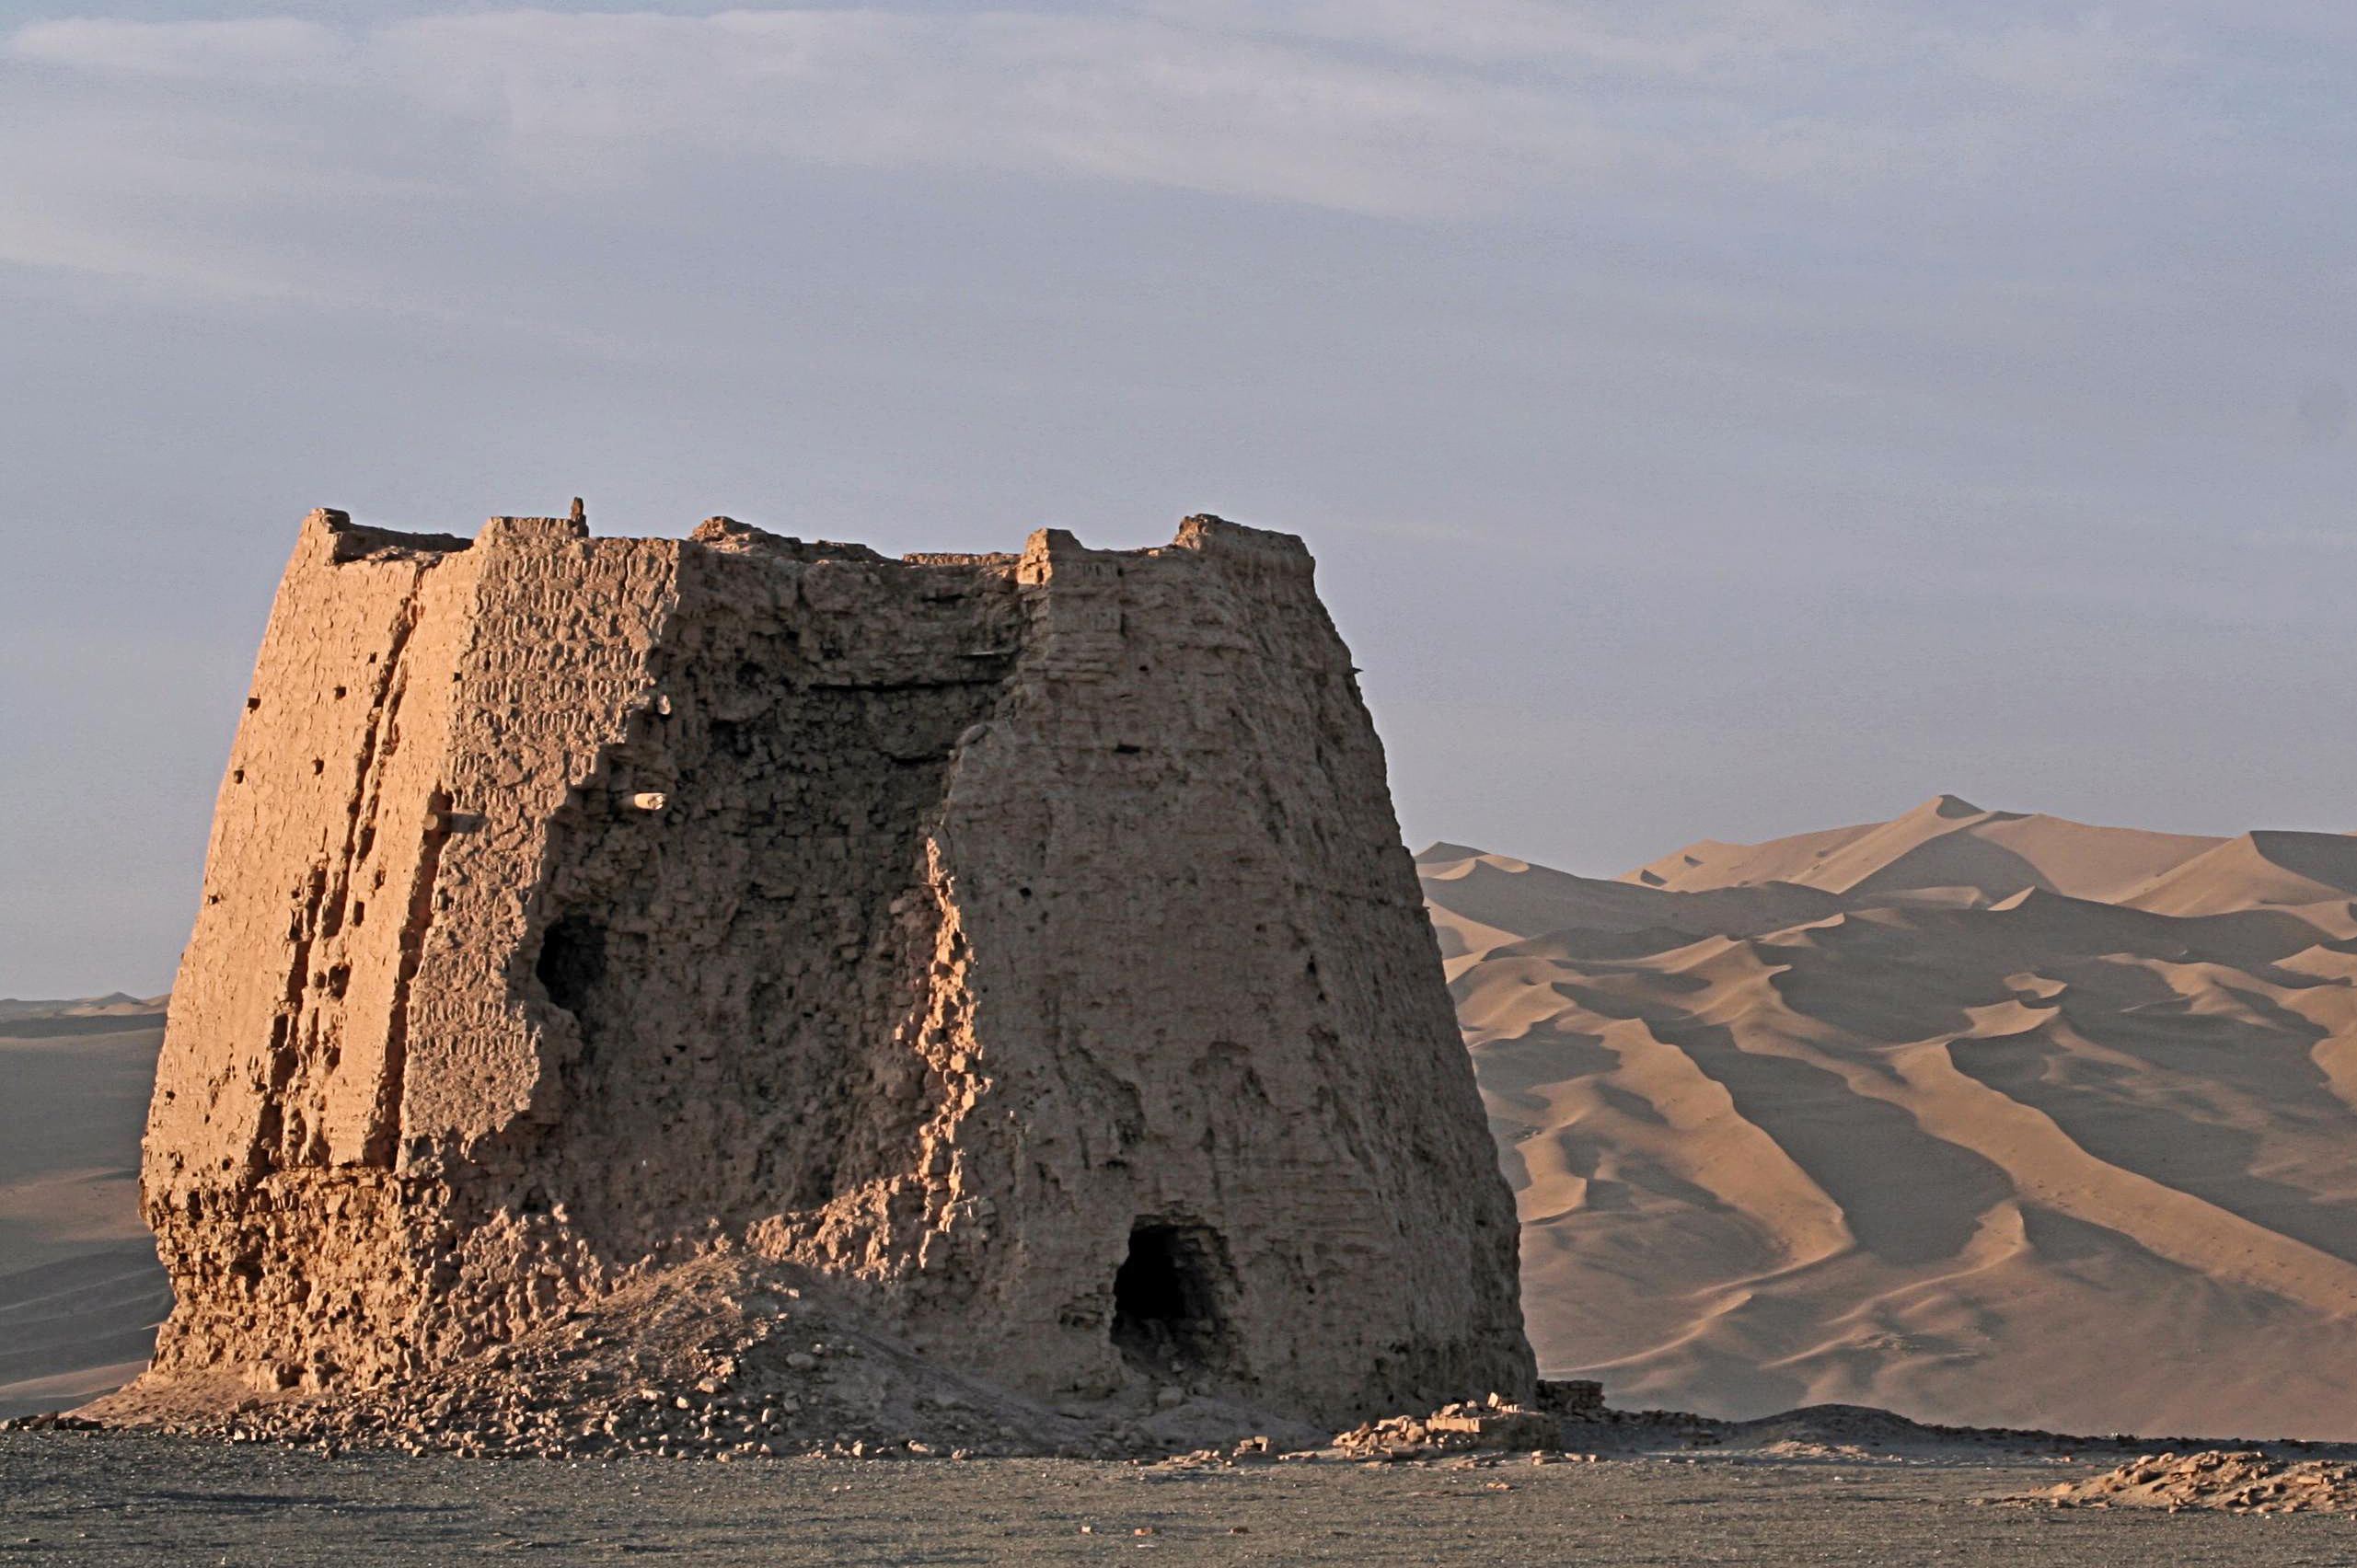 Summer_Vacation_2007,_263,_Watchtower_In_The_Morning_Light,_Dunhuang,_Gansu_Province